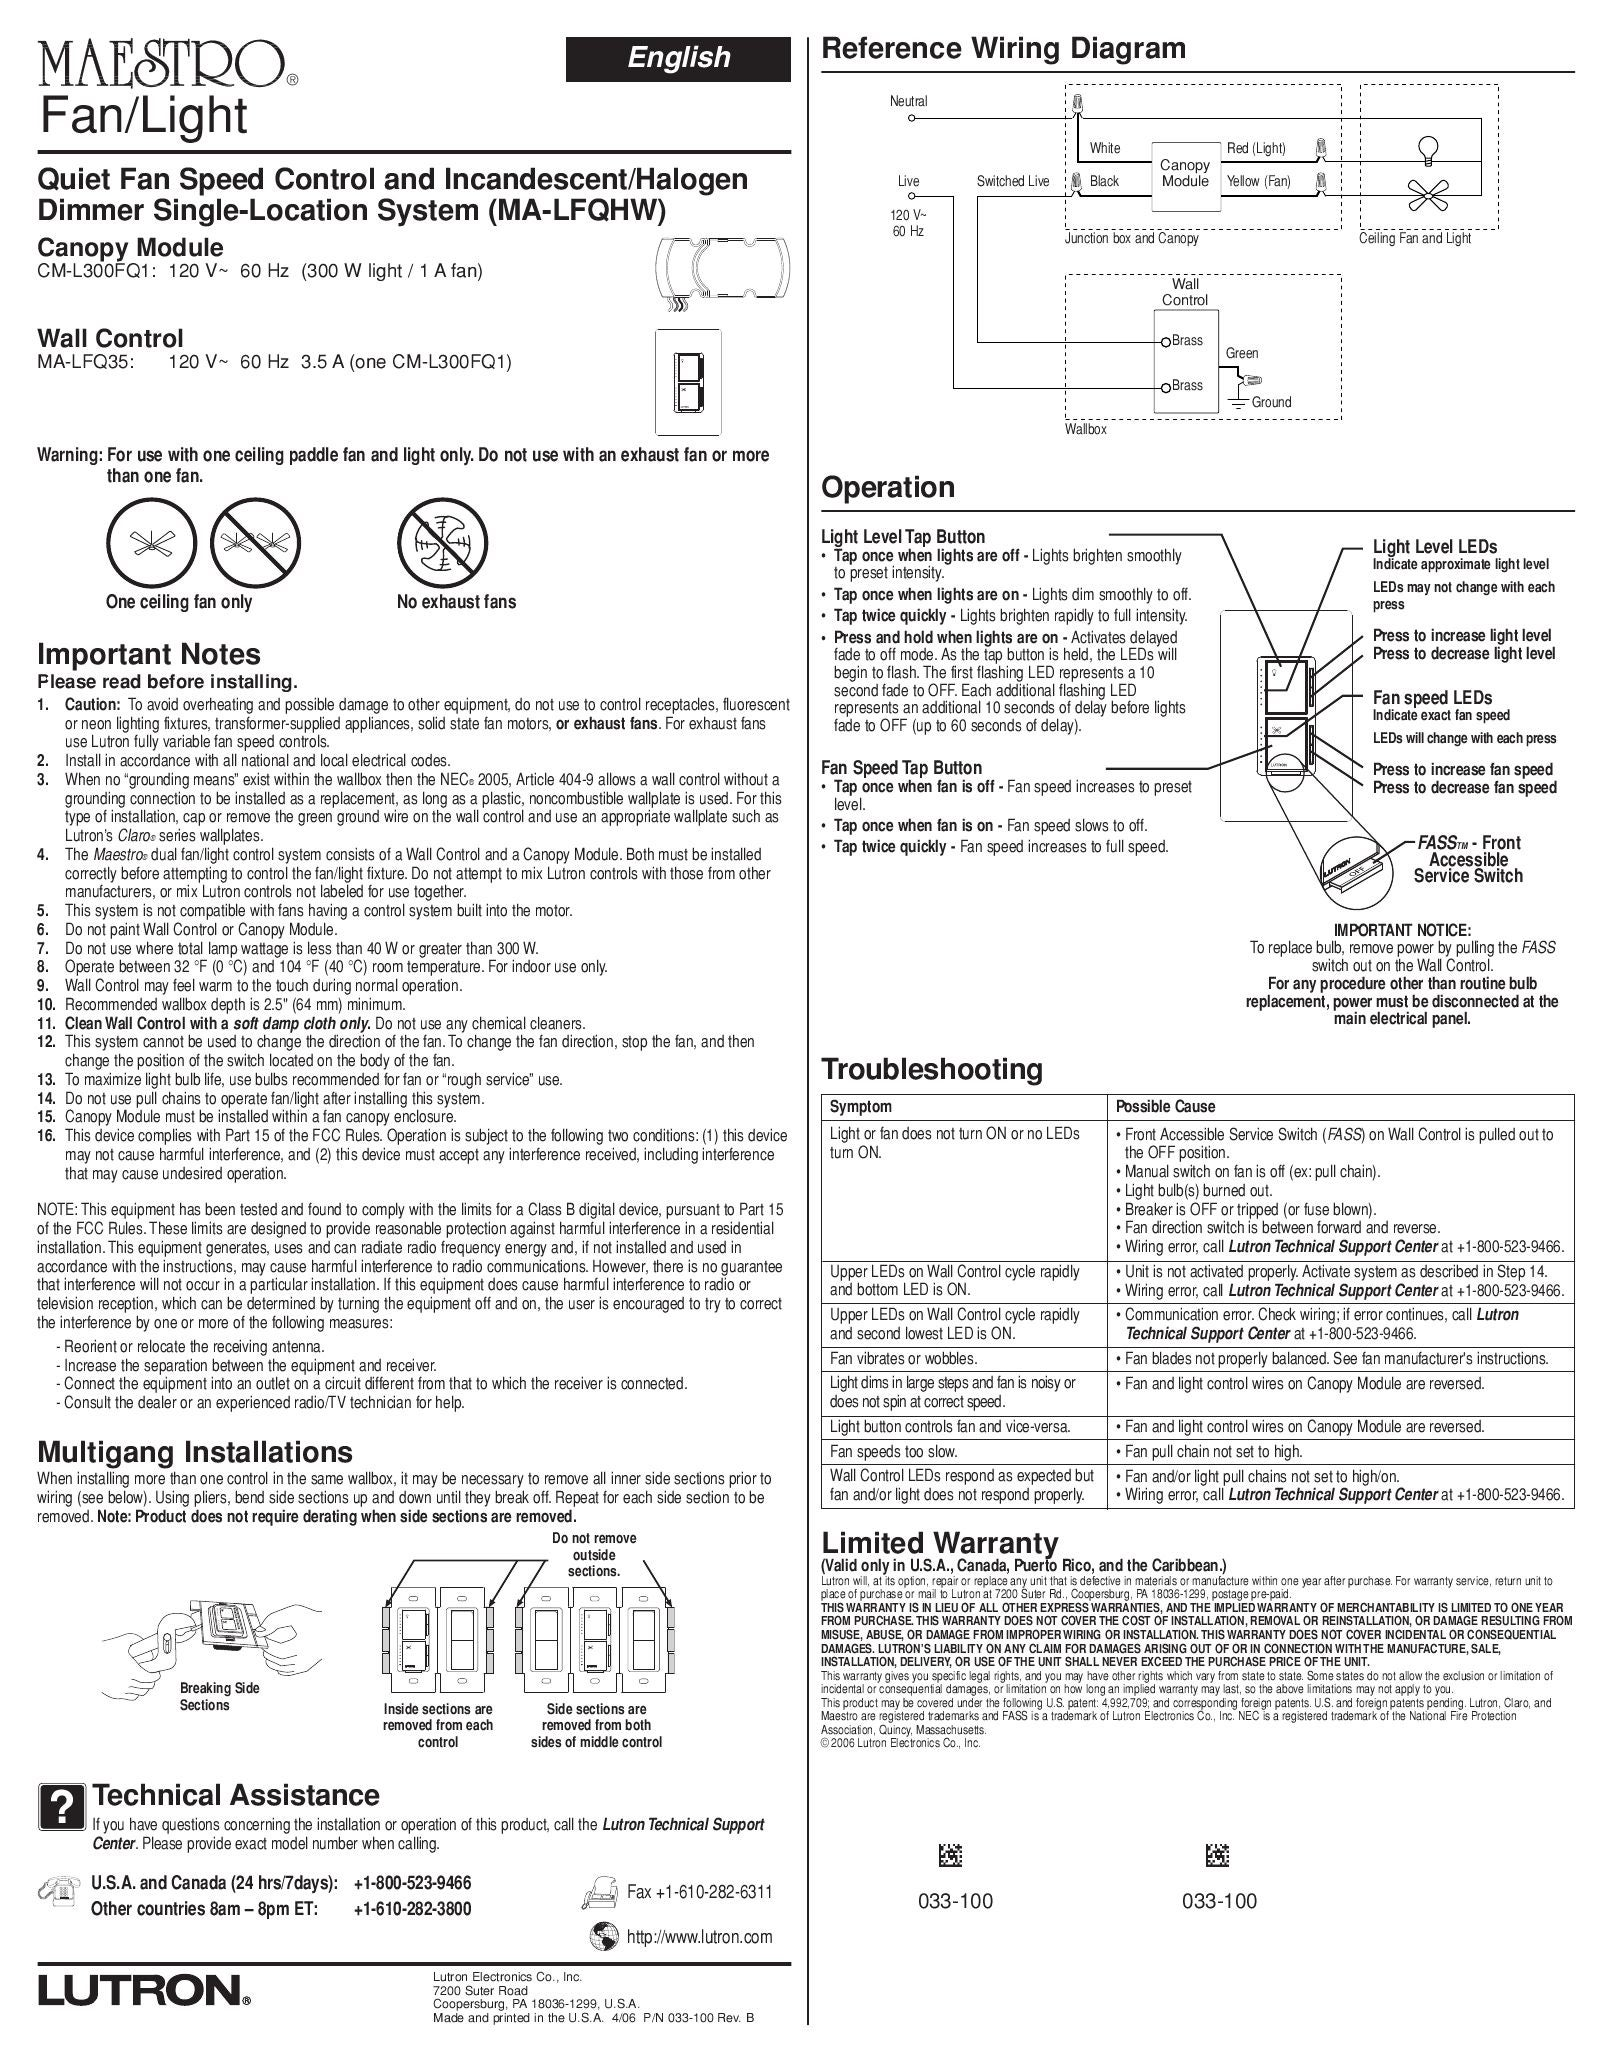 lutron wiring diagram ididit steering column maw 600 29 images